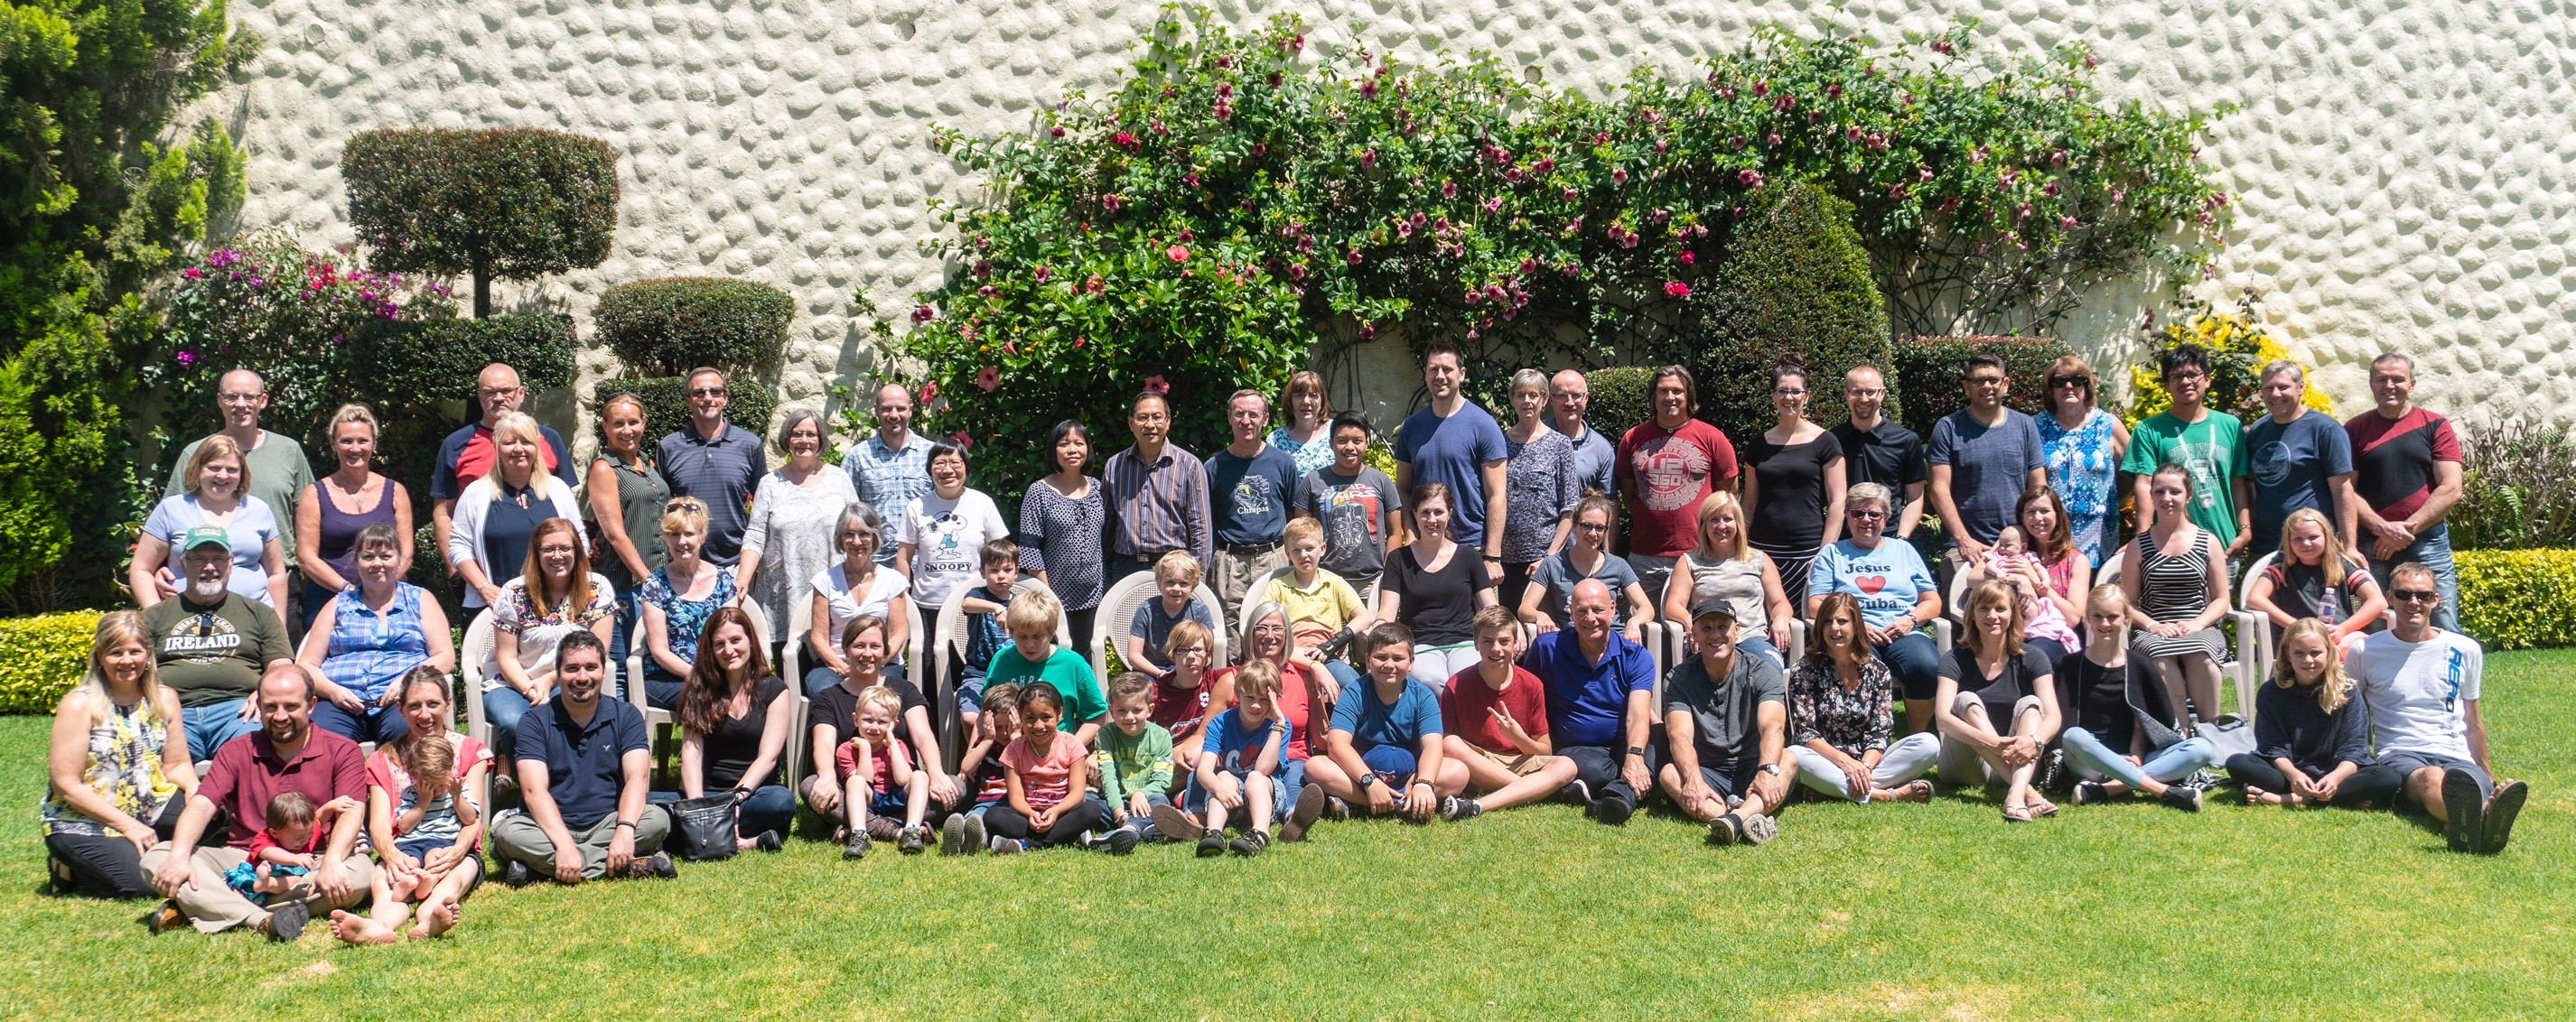 Mexico CTR 2018 Group Picture (3 MP)